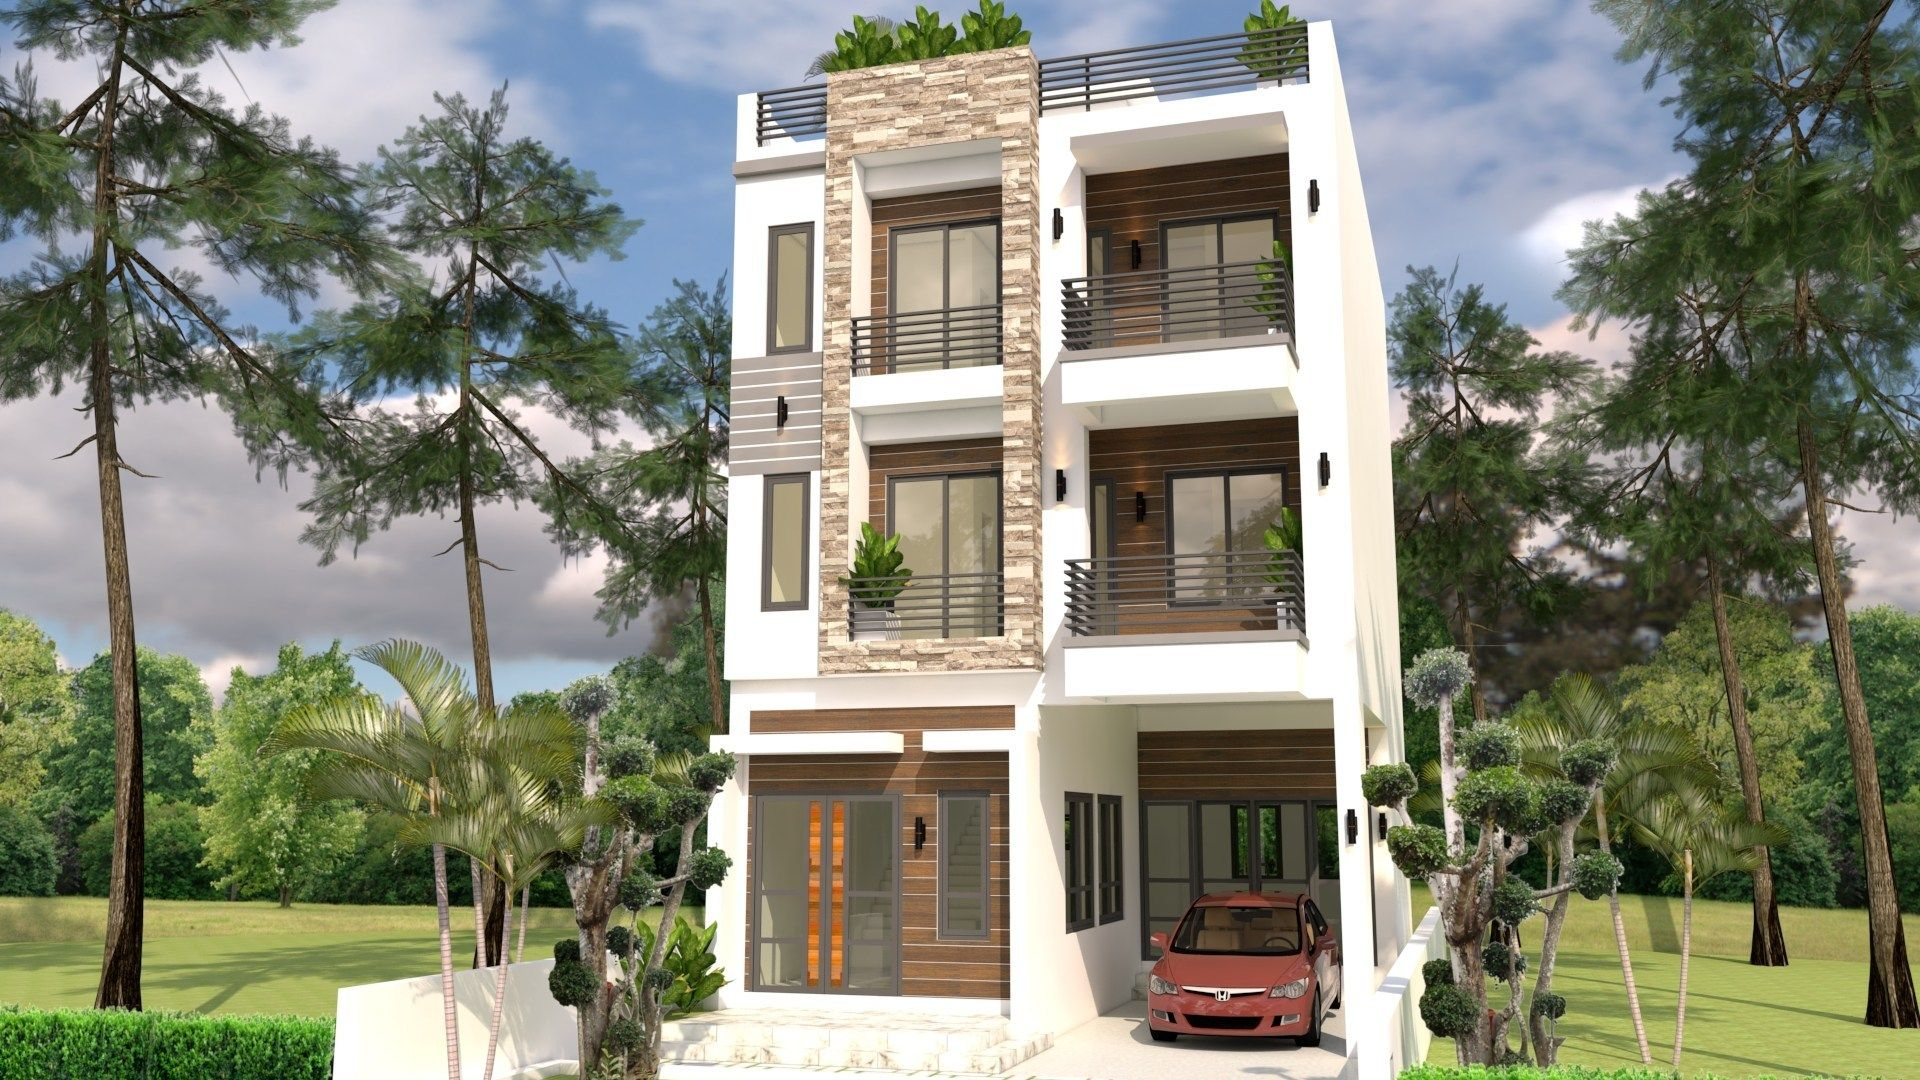 Home Design Plan 7x10m With 6 Bedrooms Cool House Designs Home Design Plan Narrow House Designs